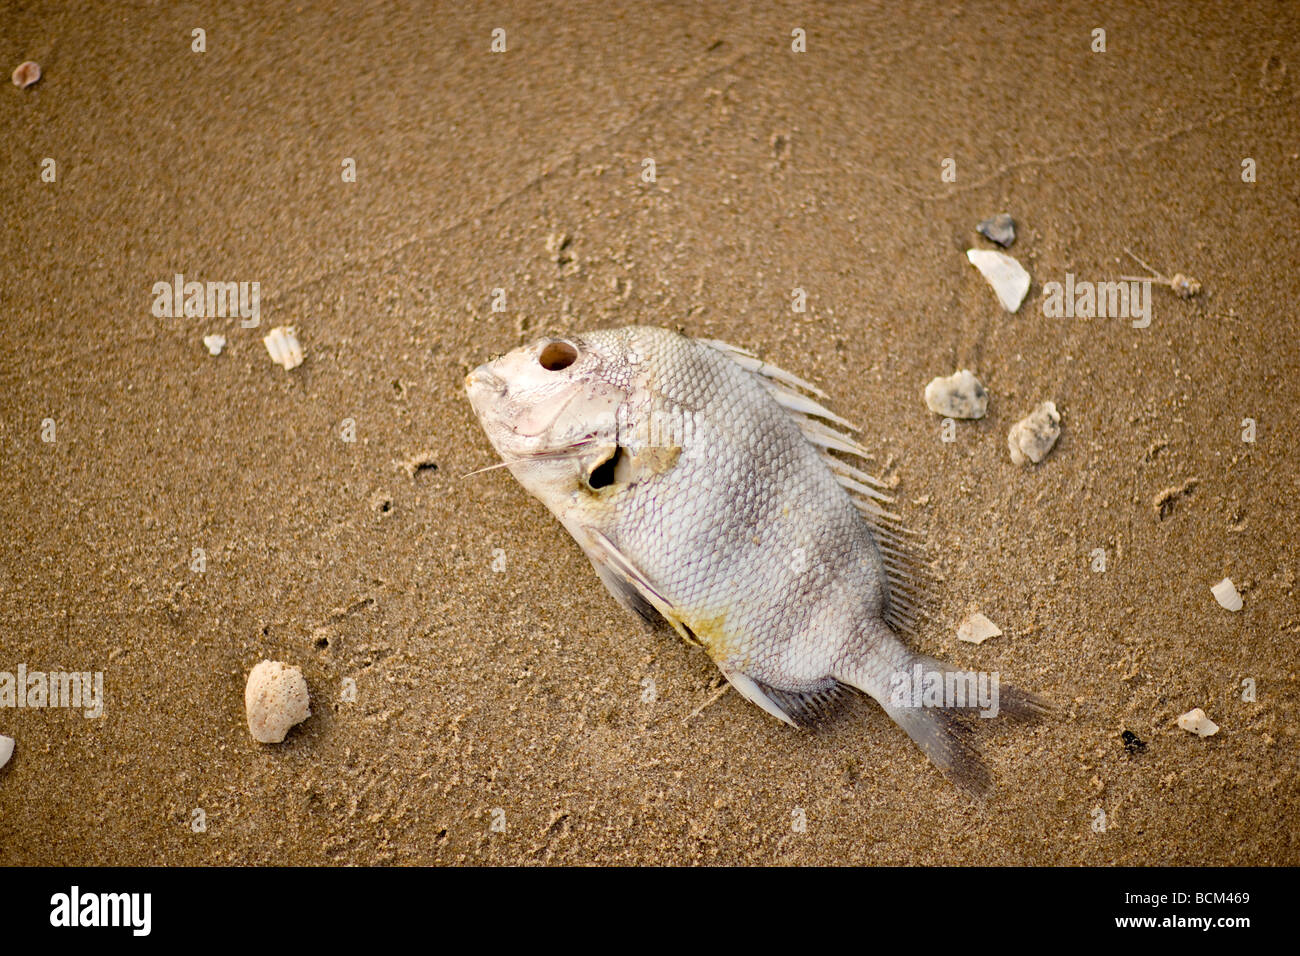 Dead Fish lying on the beach - Stock Image